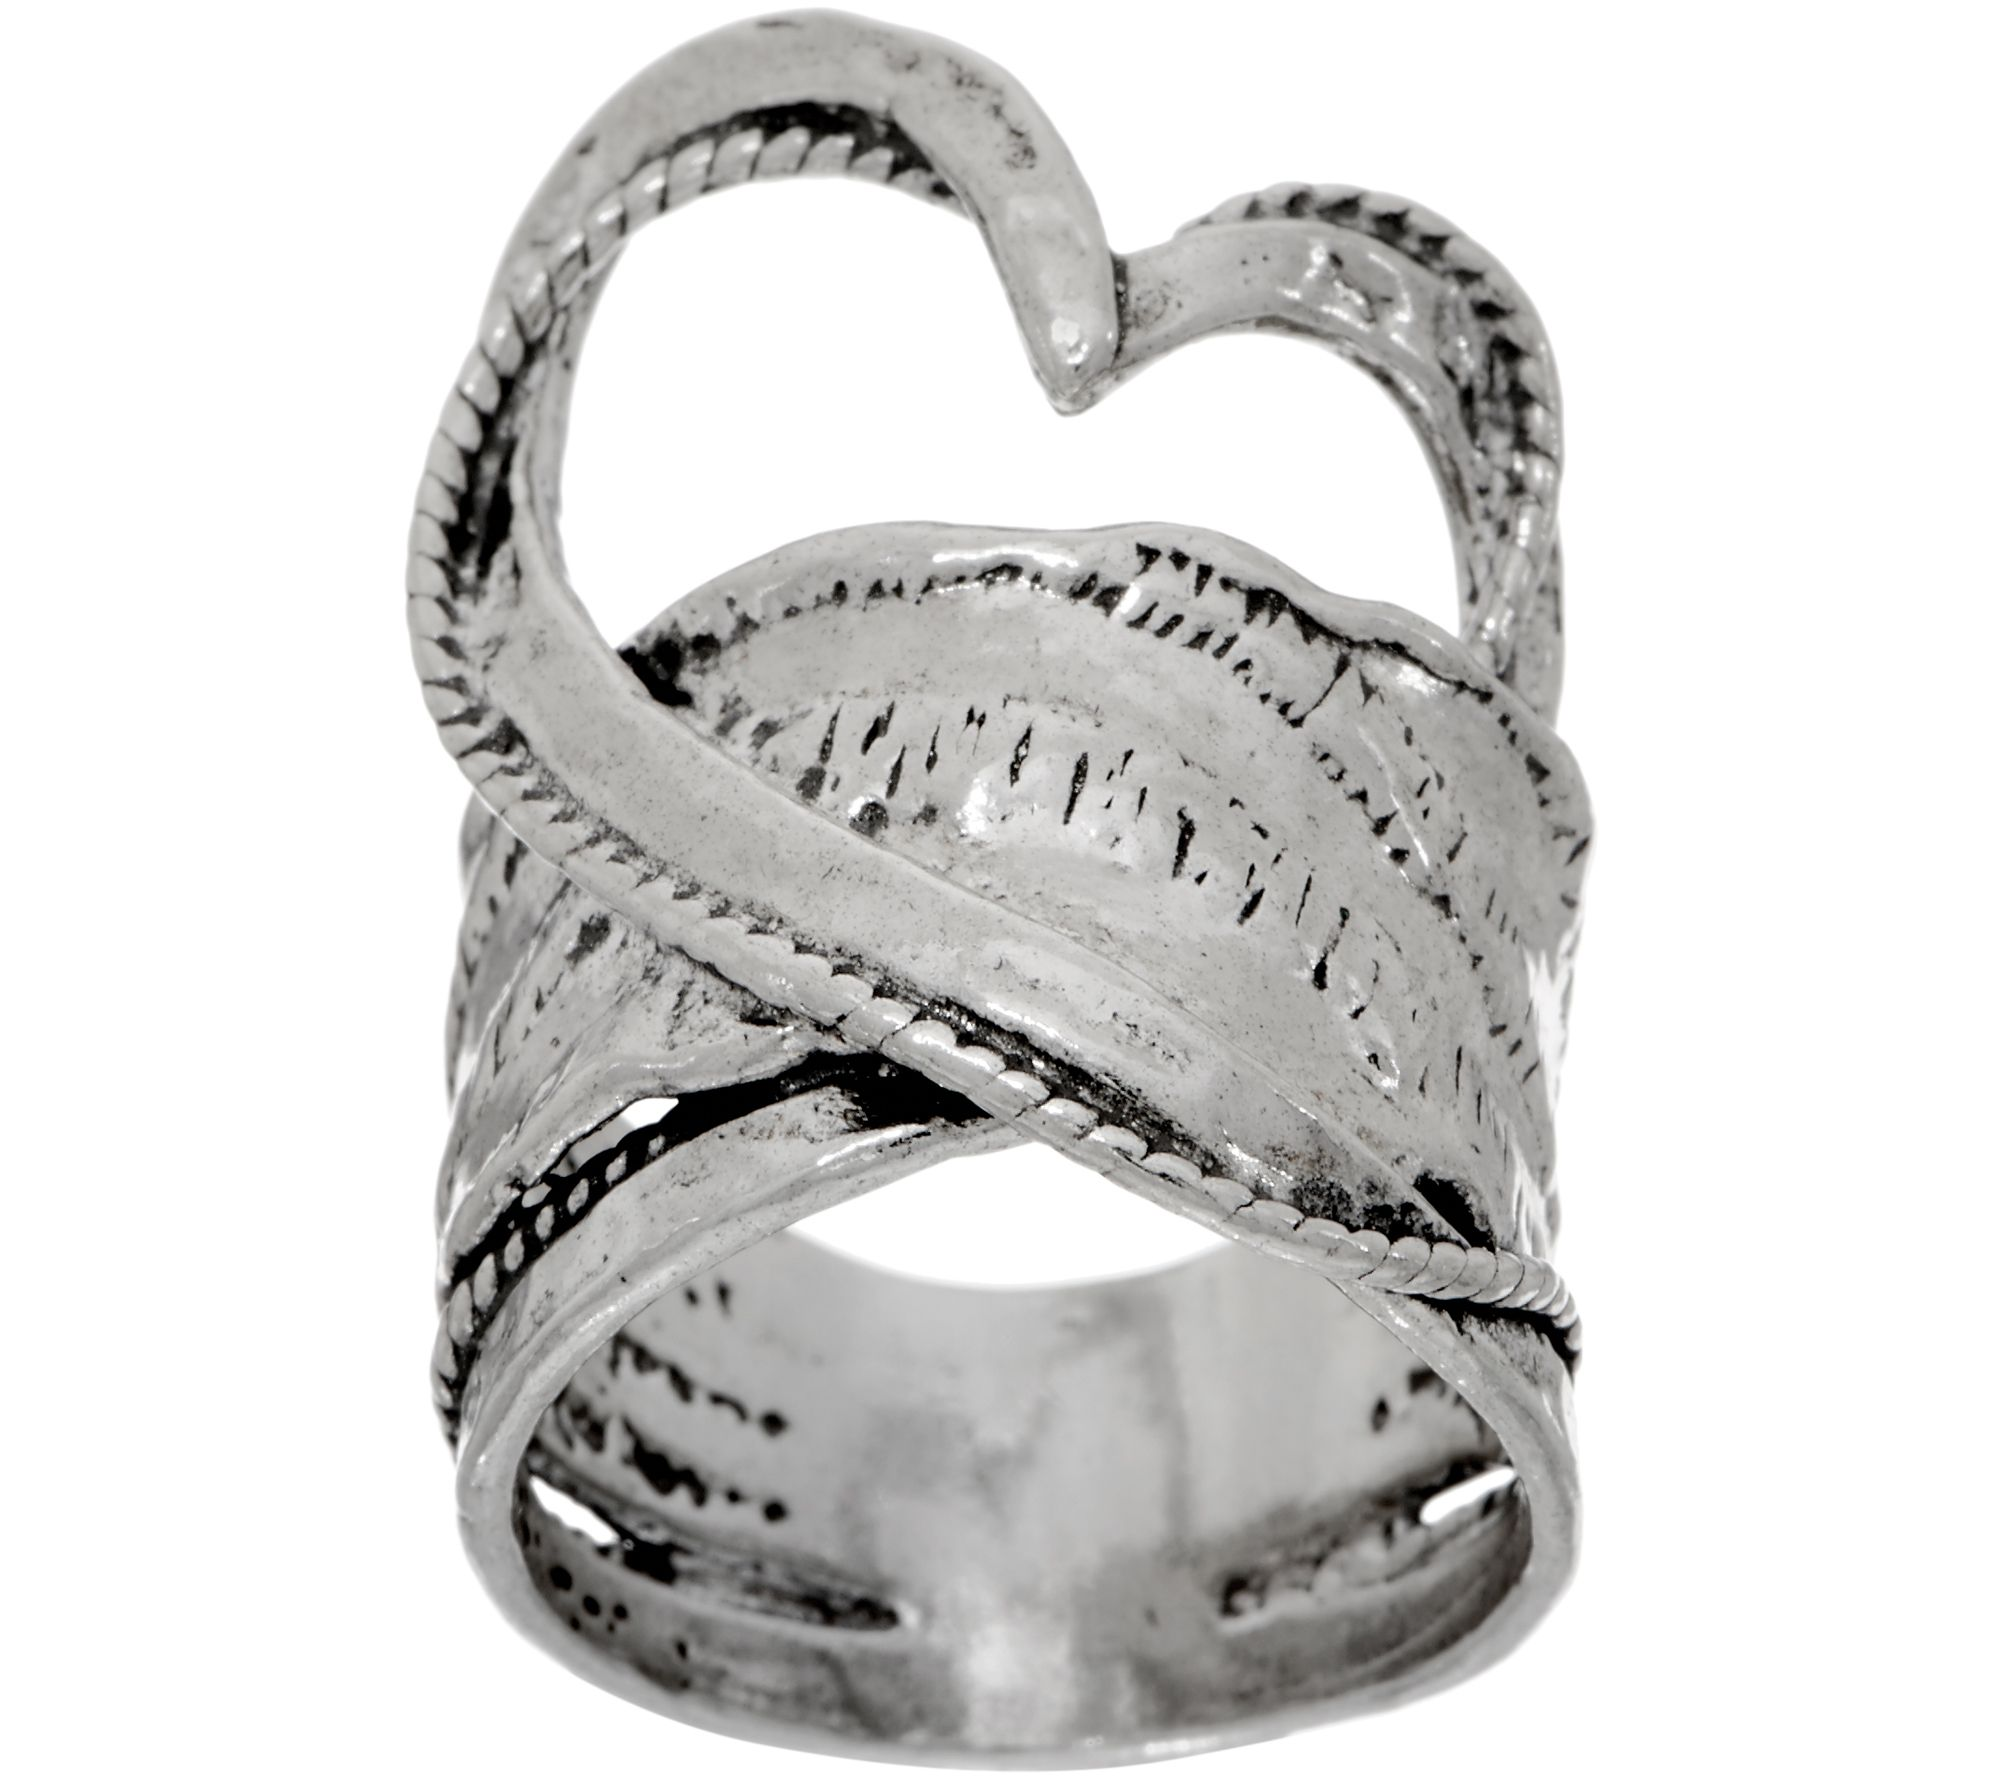 Paz Sterling Free form Heart Ring Page 1 — QVC